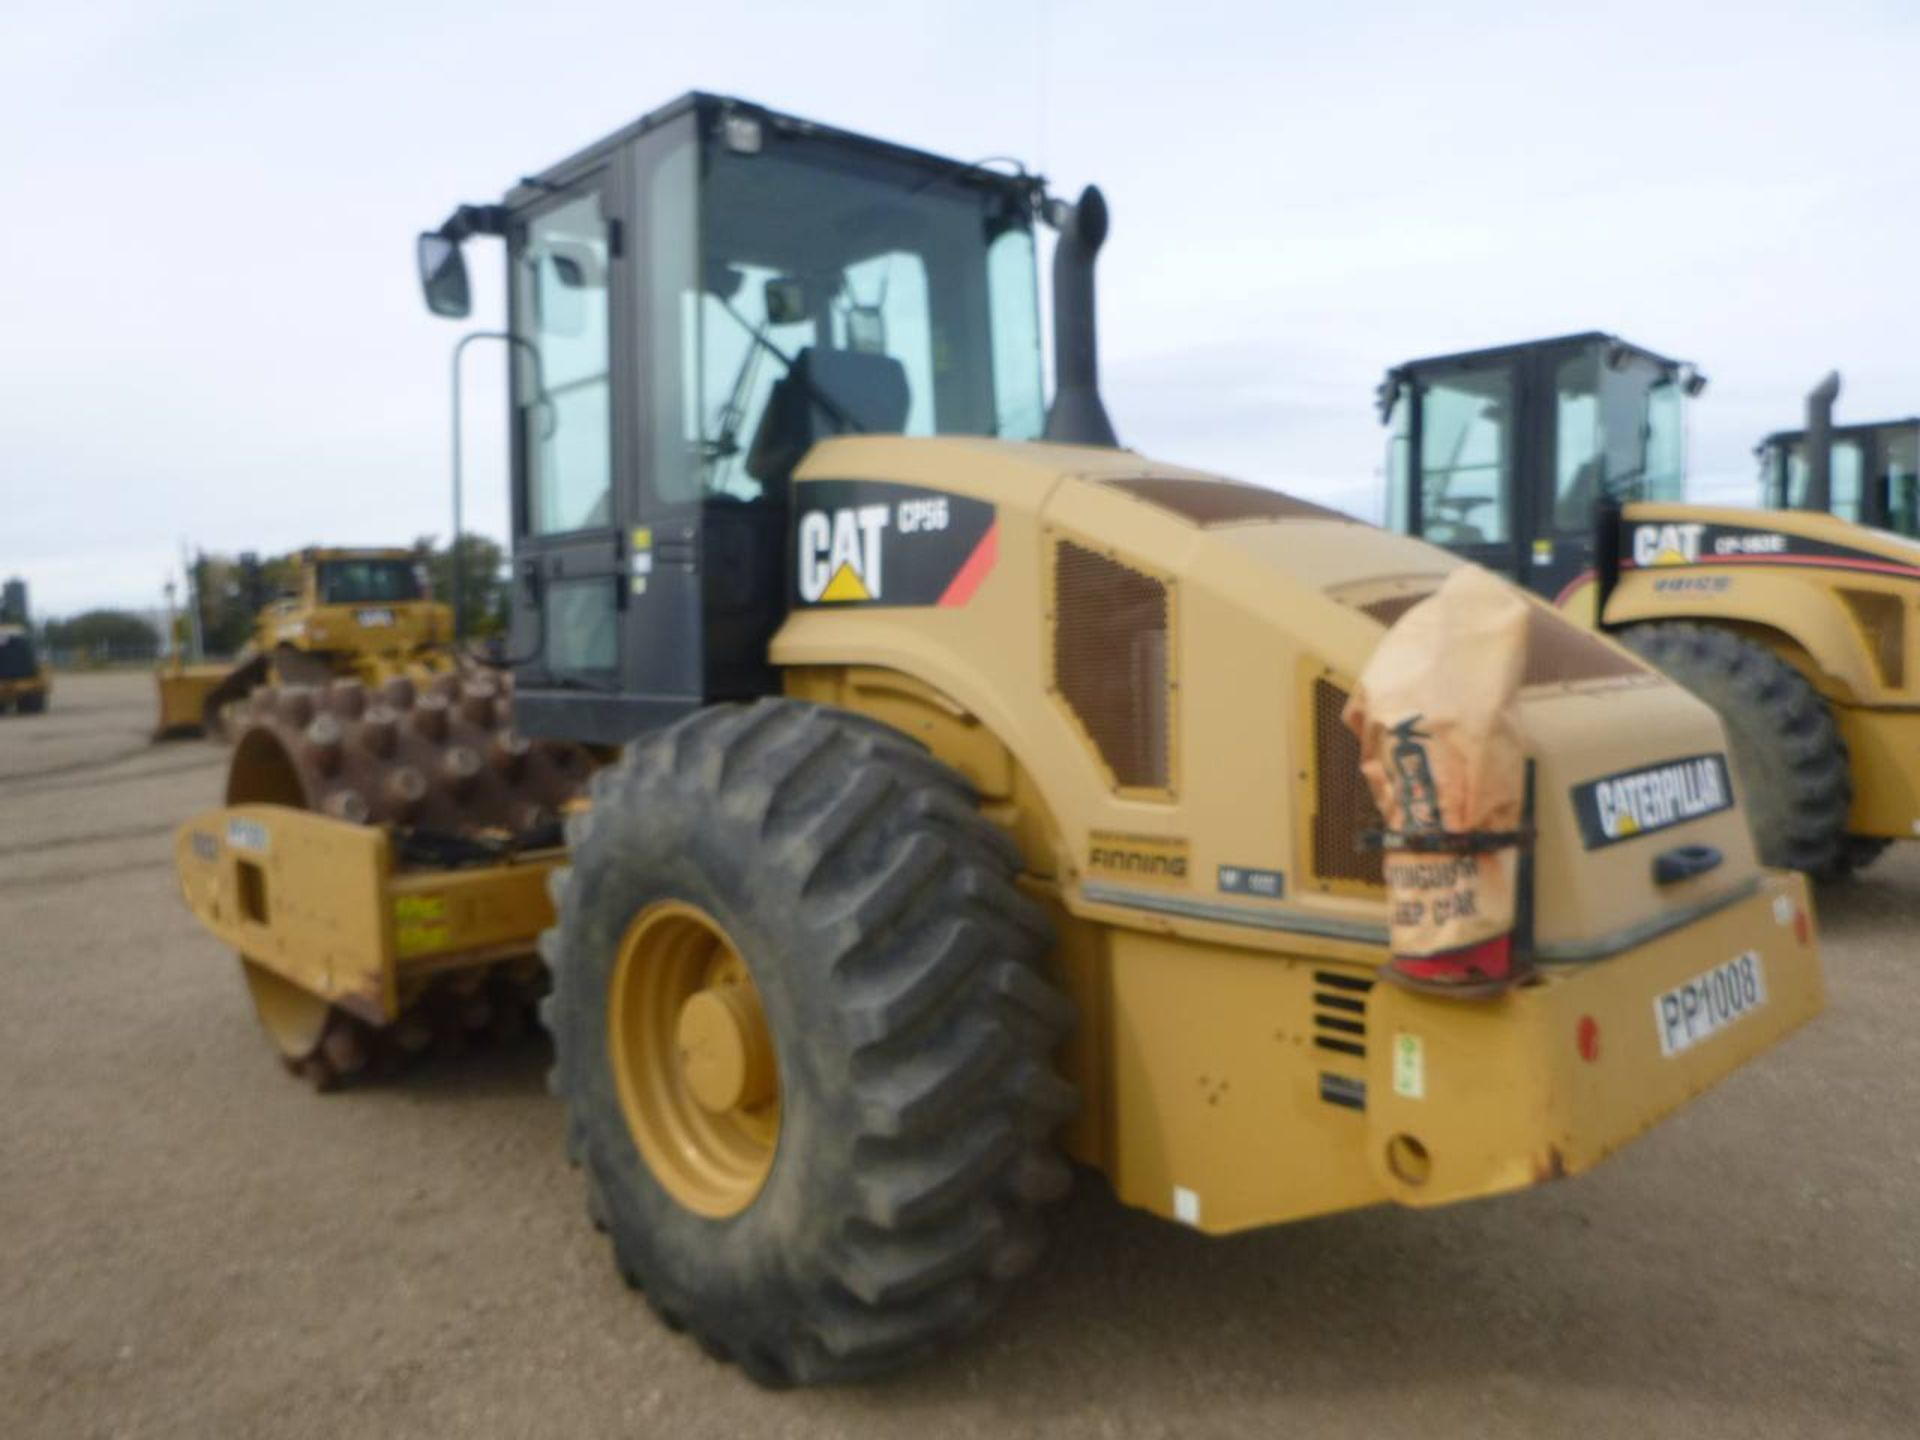 2009 Caterpillar CP56 Compactor - Image 4 of 9